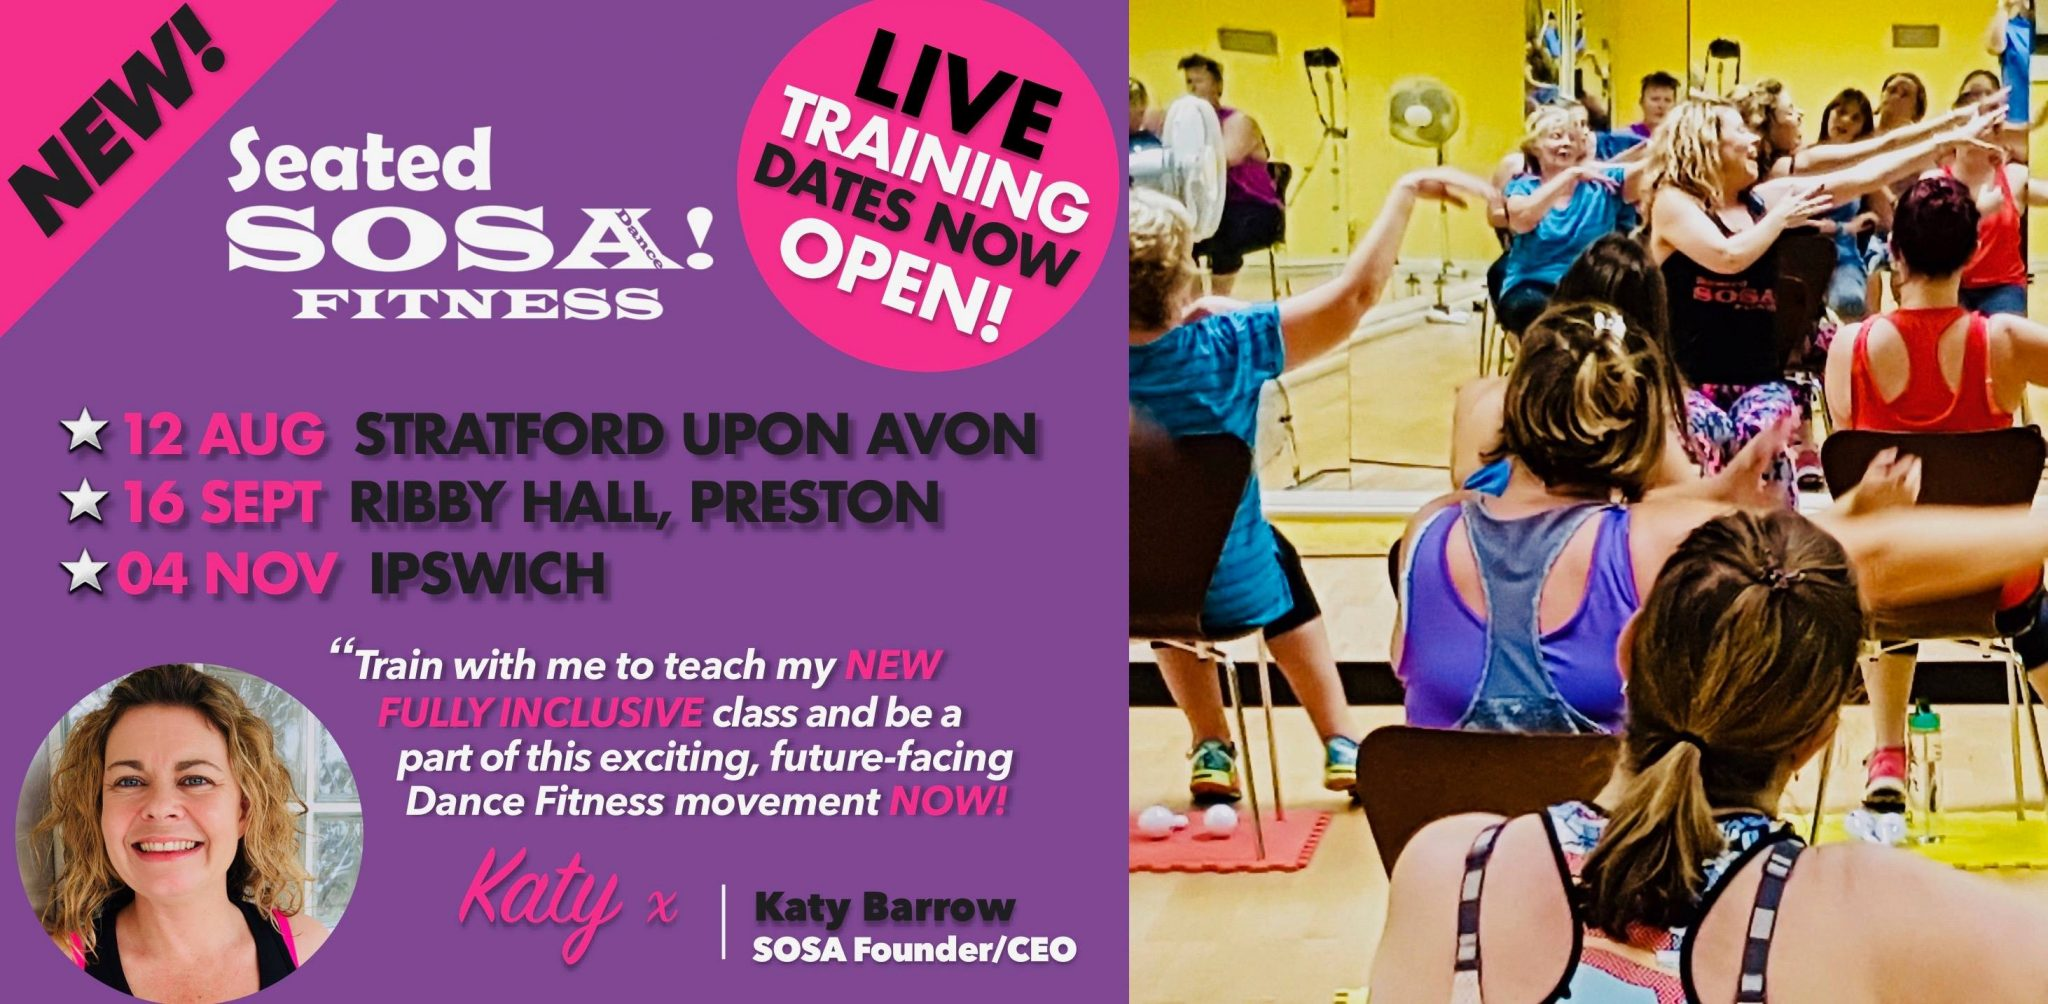 Seated SOSA Dance Fitness Instructor Training - Chair dance for EVERYONE